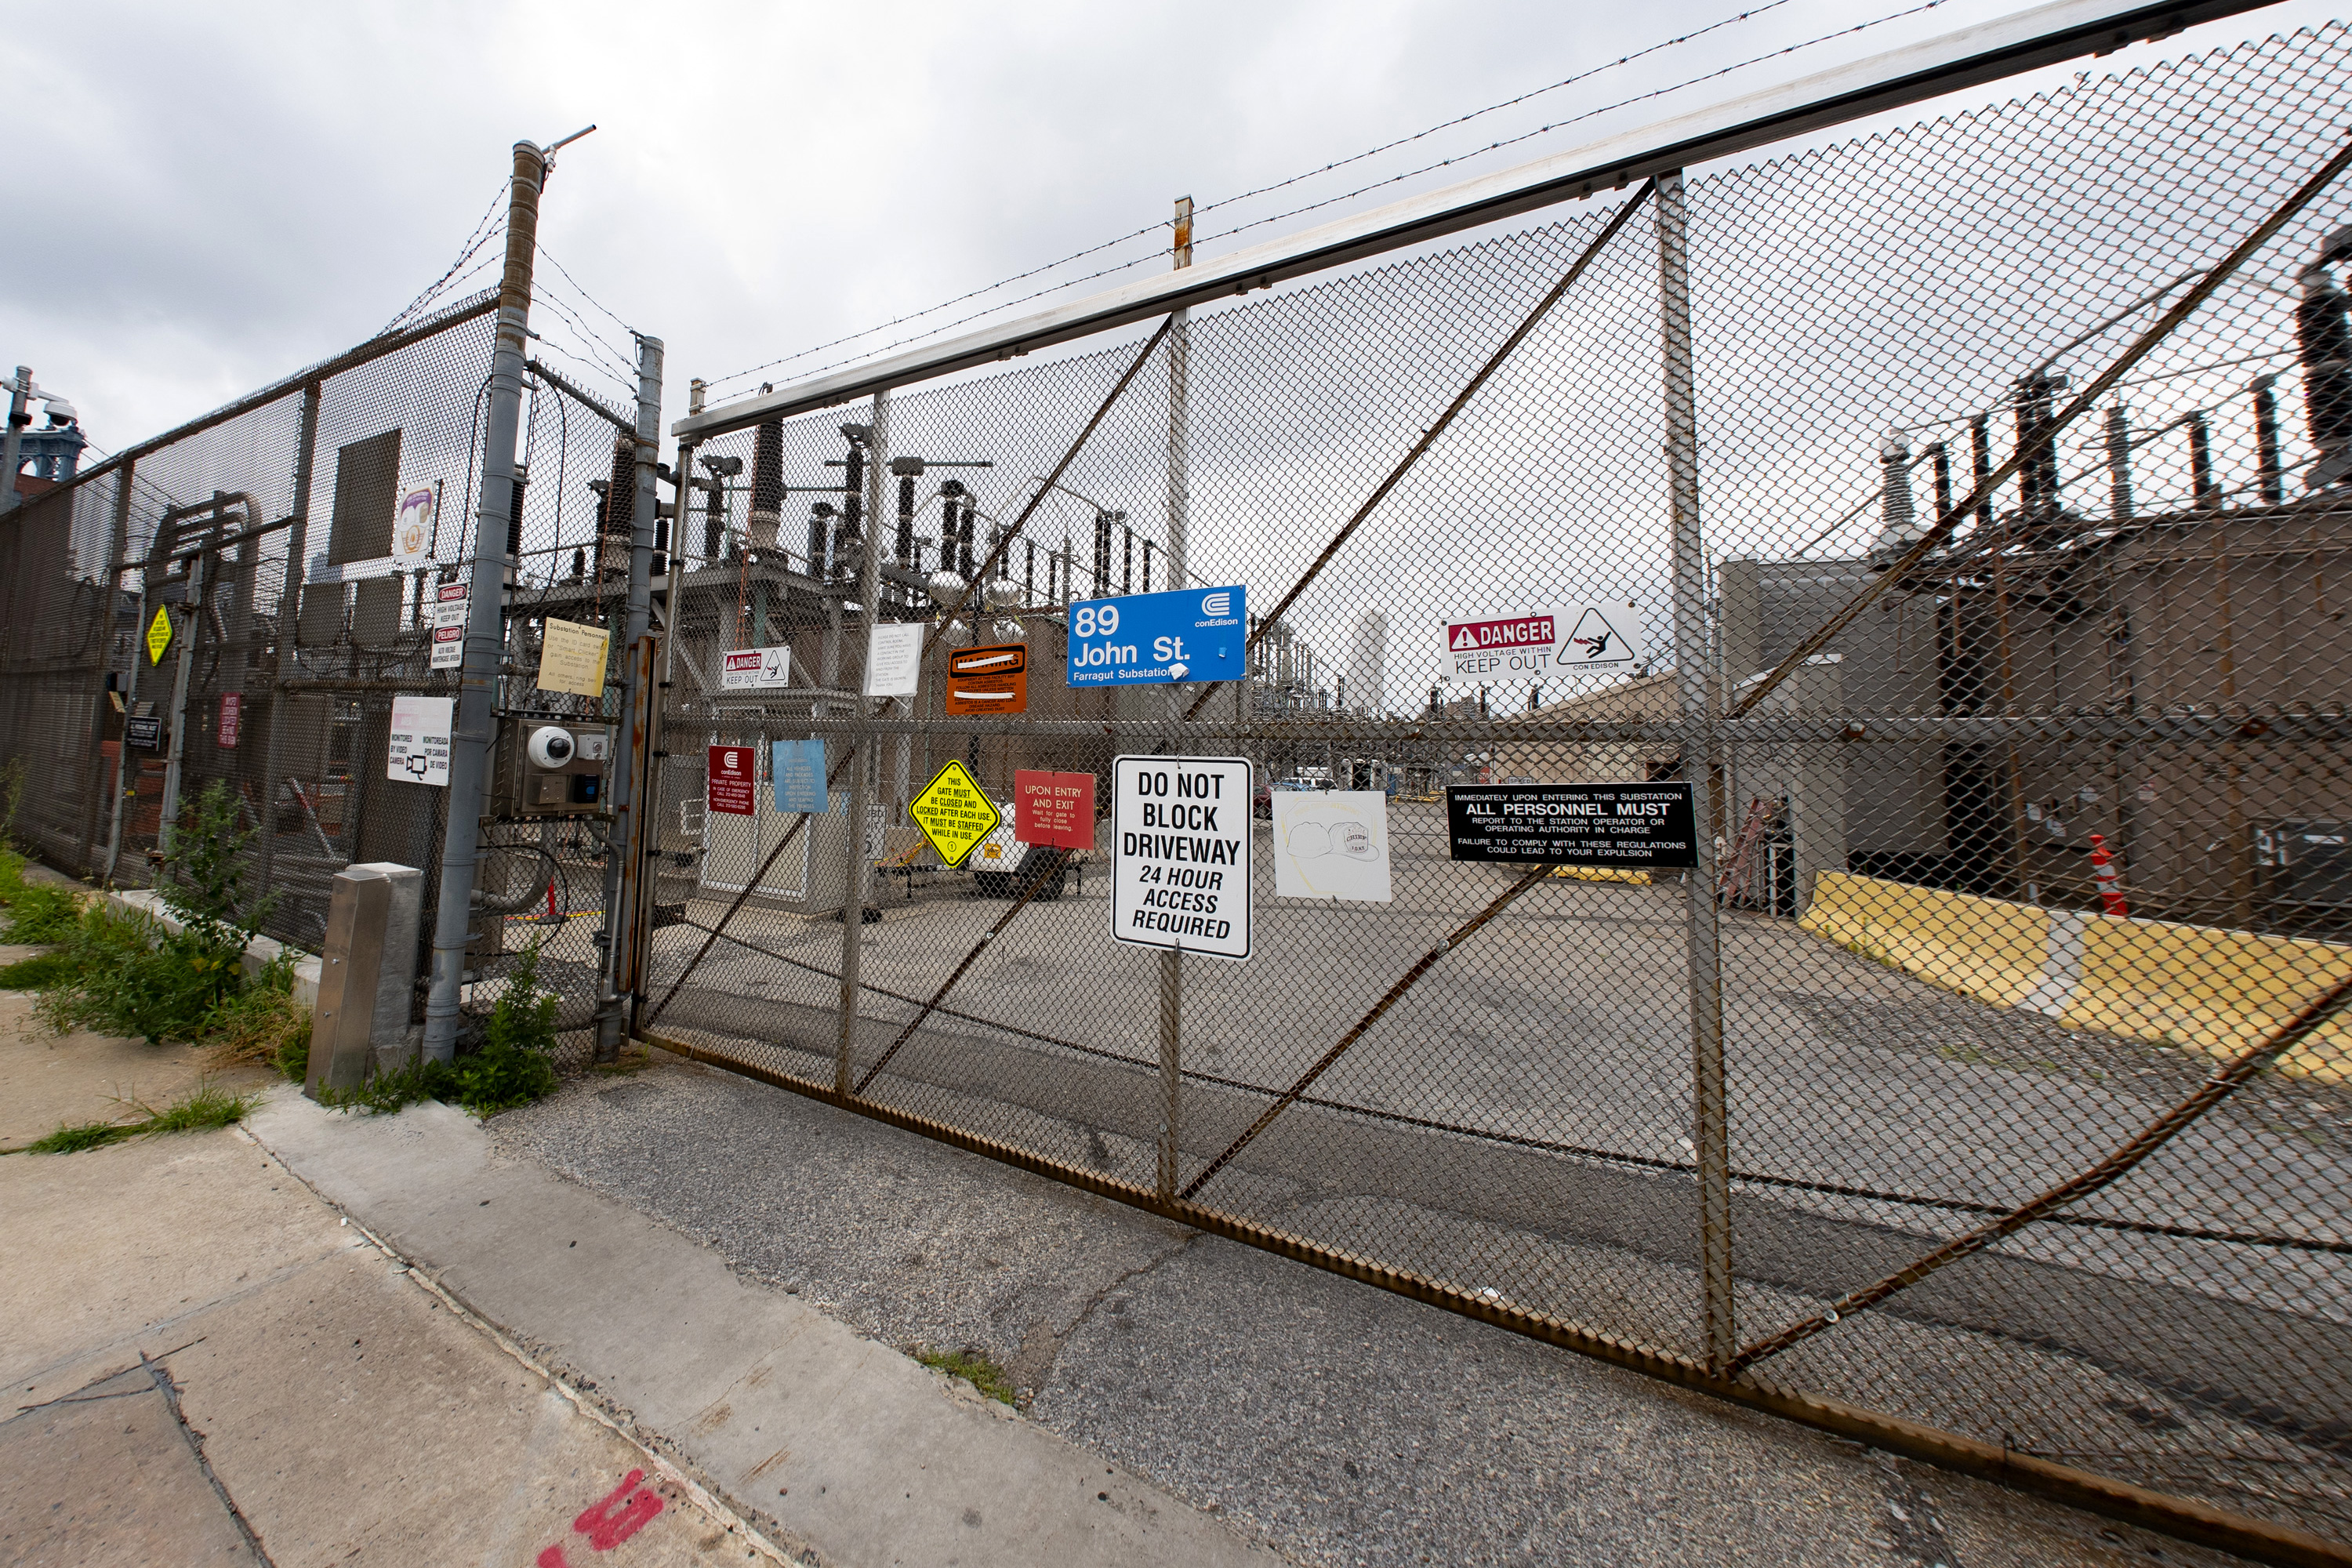 A lawsuit seeks to force the state to reveal enforcement records for the Con Ed substation at 89 John Street in Brooklyn and other company facilities.